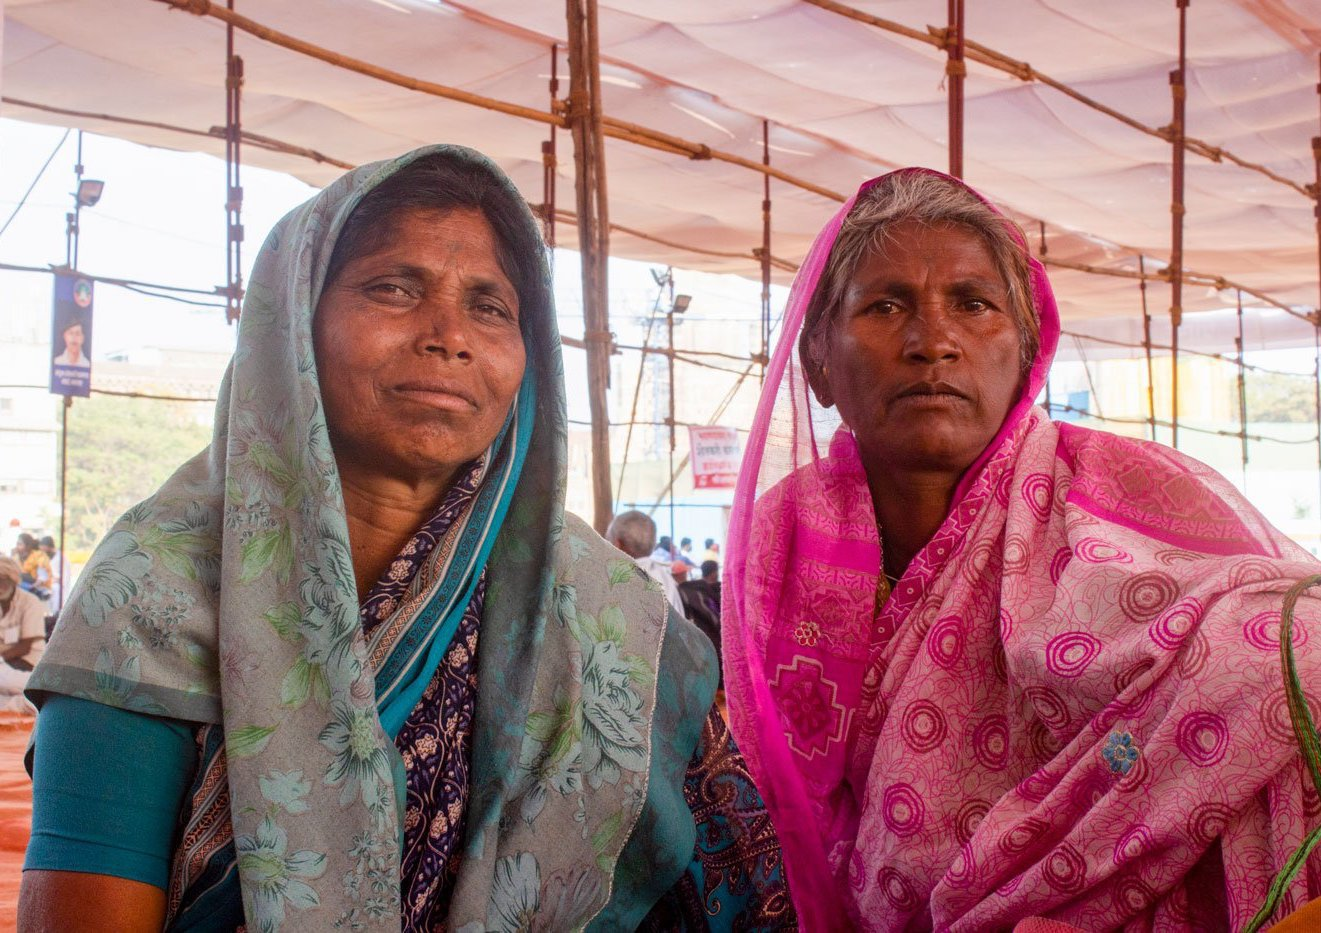 Arunabai and Shashikala – both widows from Adivasi communities, and farmers and farm labourers in Aurangabad district – came to Mumbai to protest against the new farm laws and demand their land titles